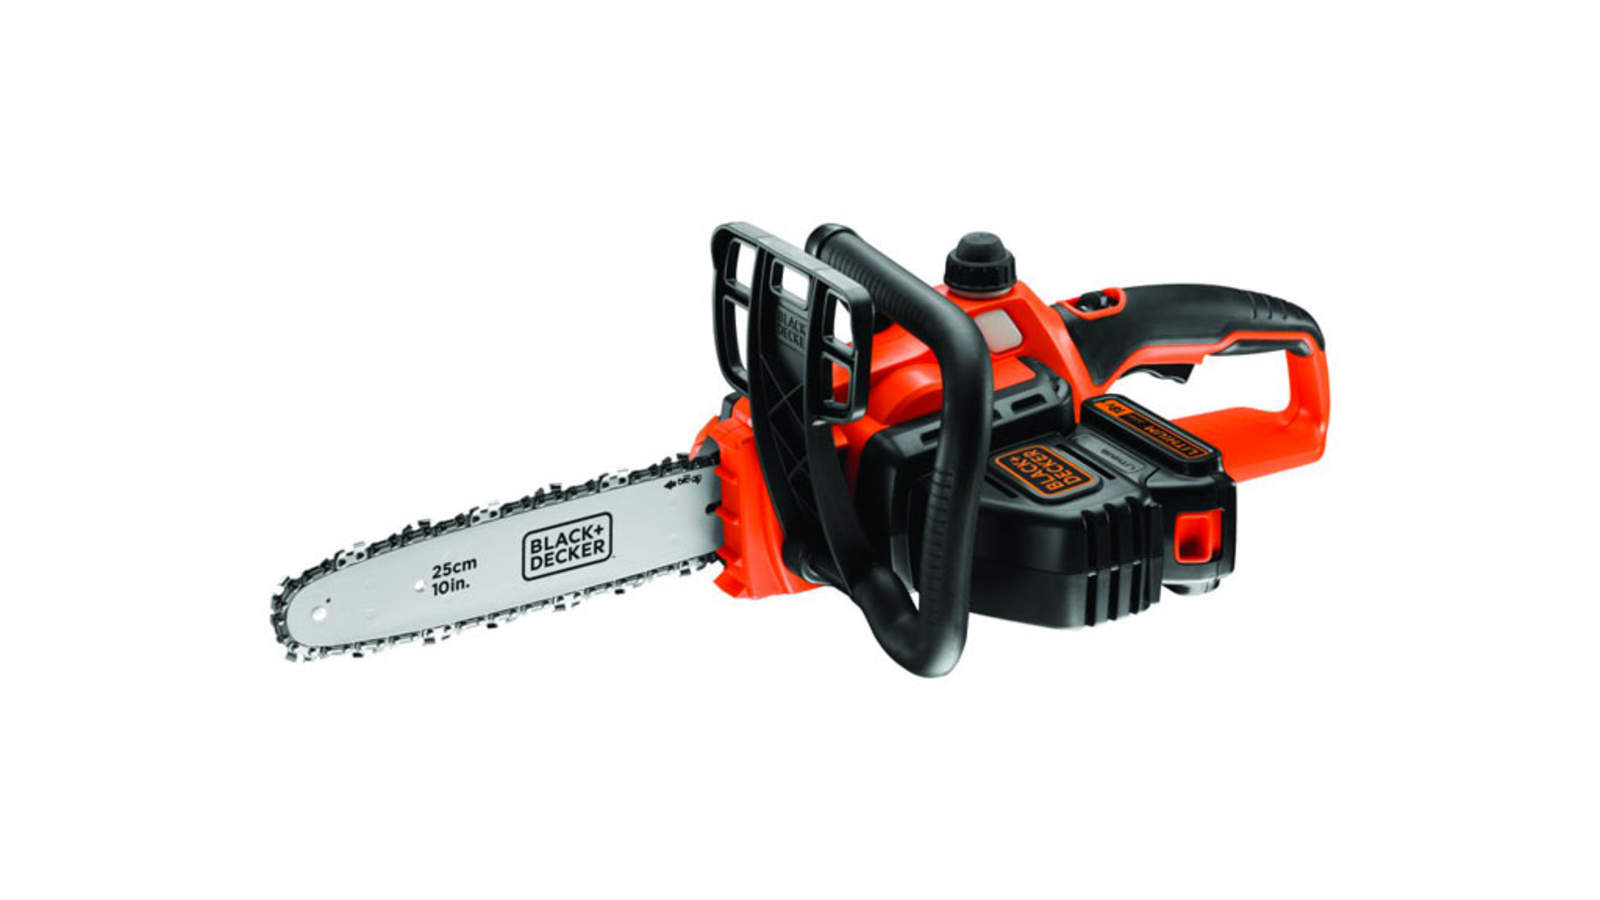 Perceuse visseuse black et decker egbl108k - Perceuse black et decker 18v ...